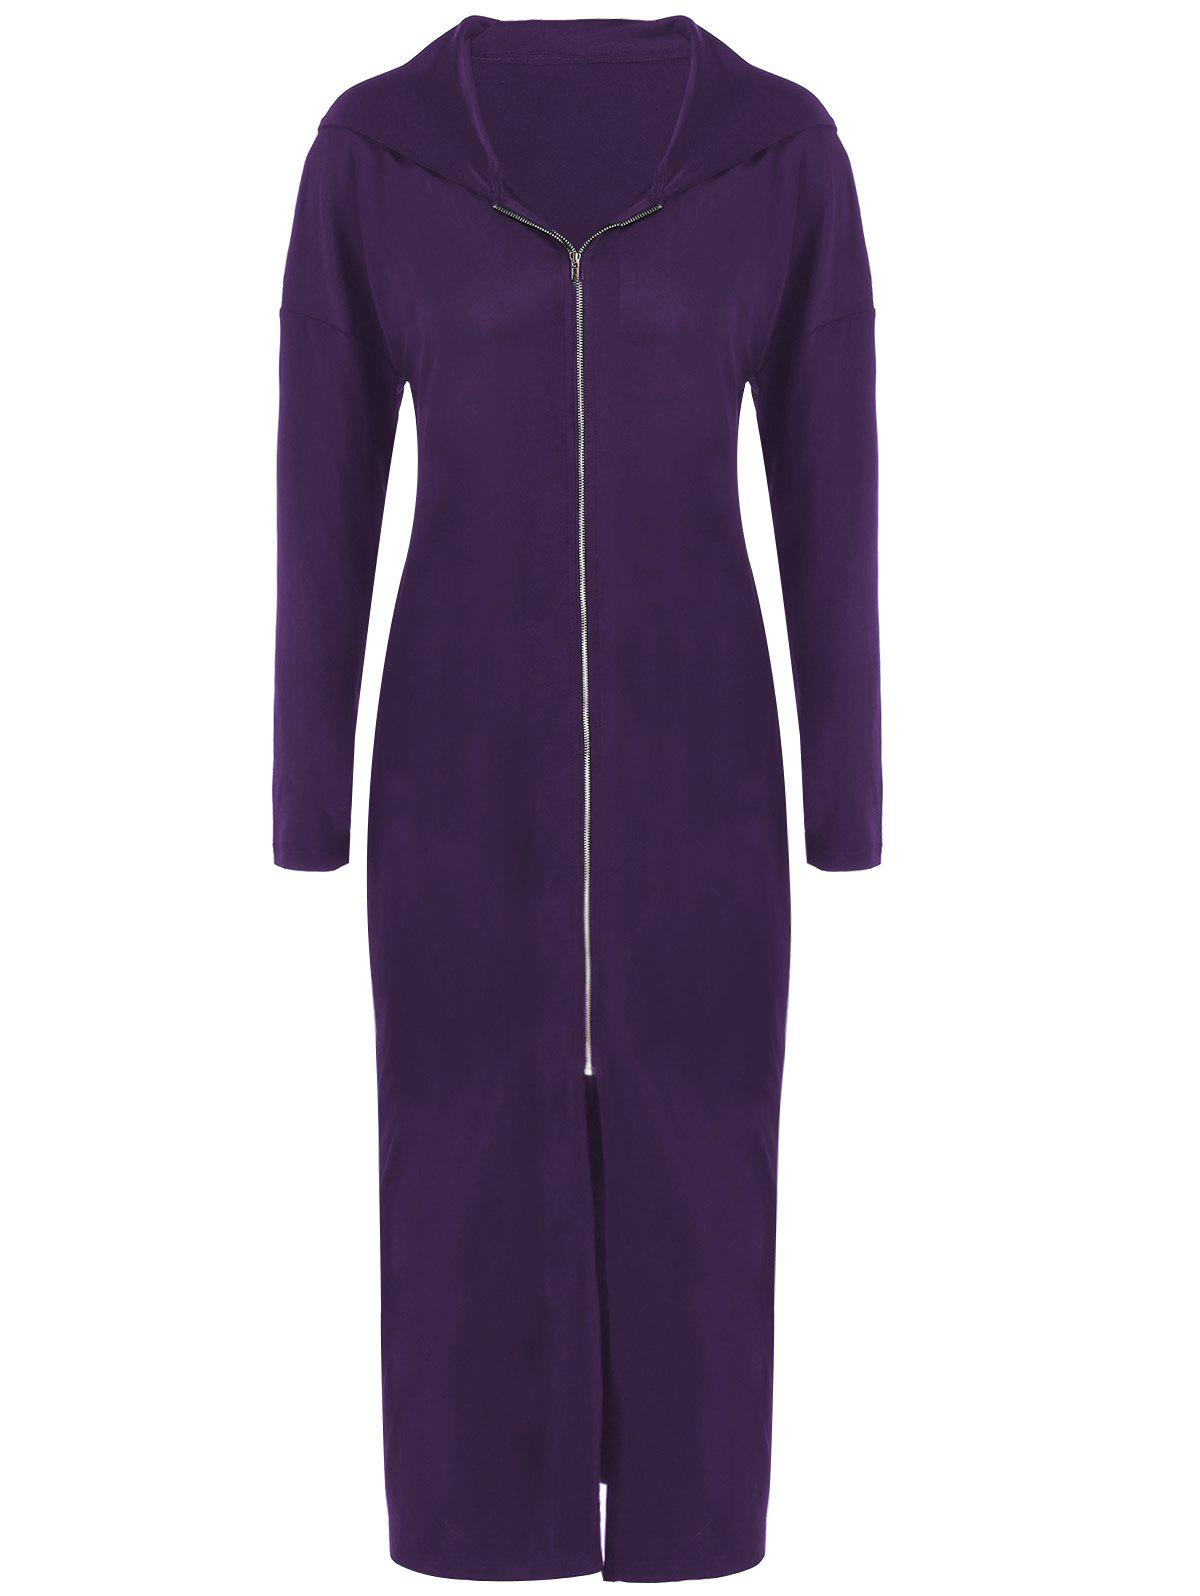 Plus Size Zip Front Bodycon Hooded Dress with Long Sleeves - DEEP PURPLE 4XL